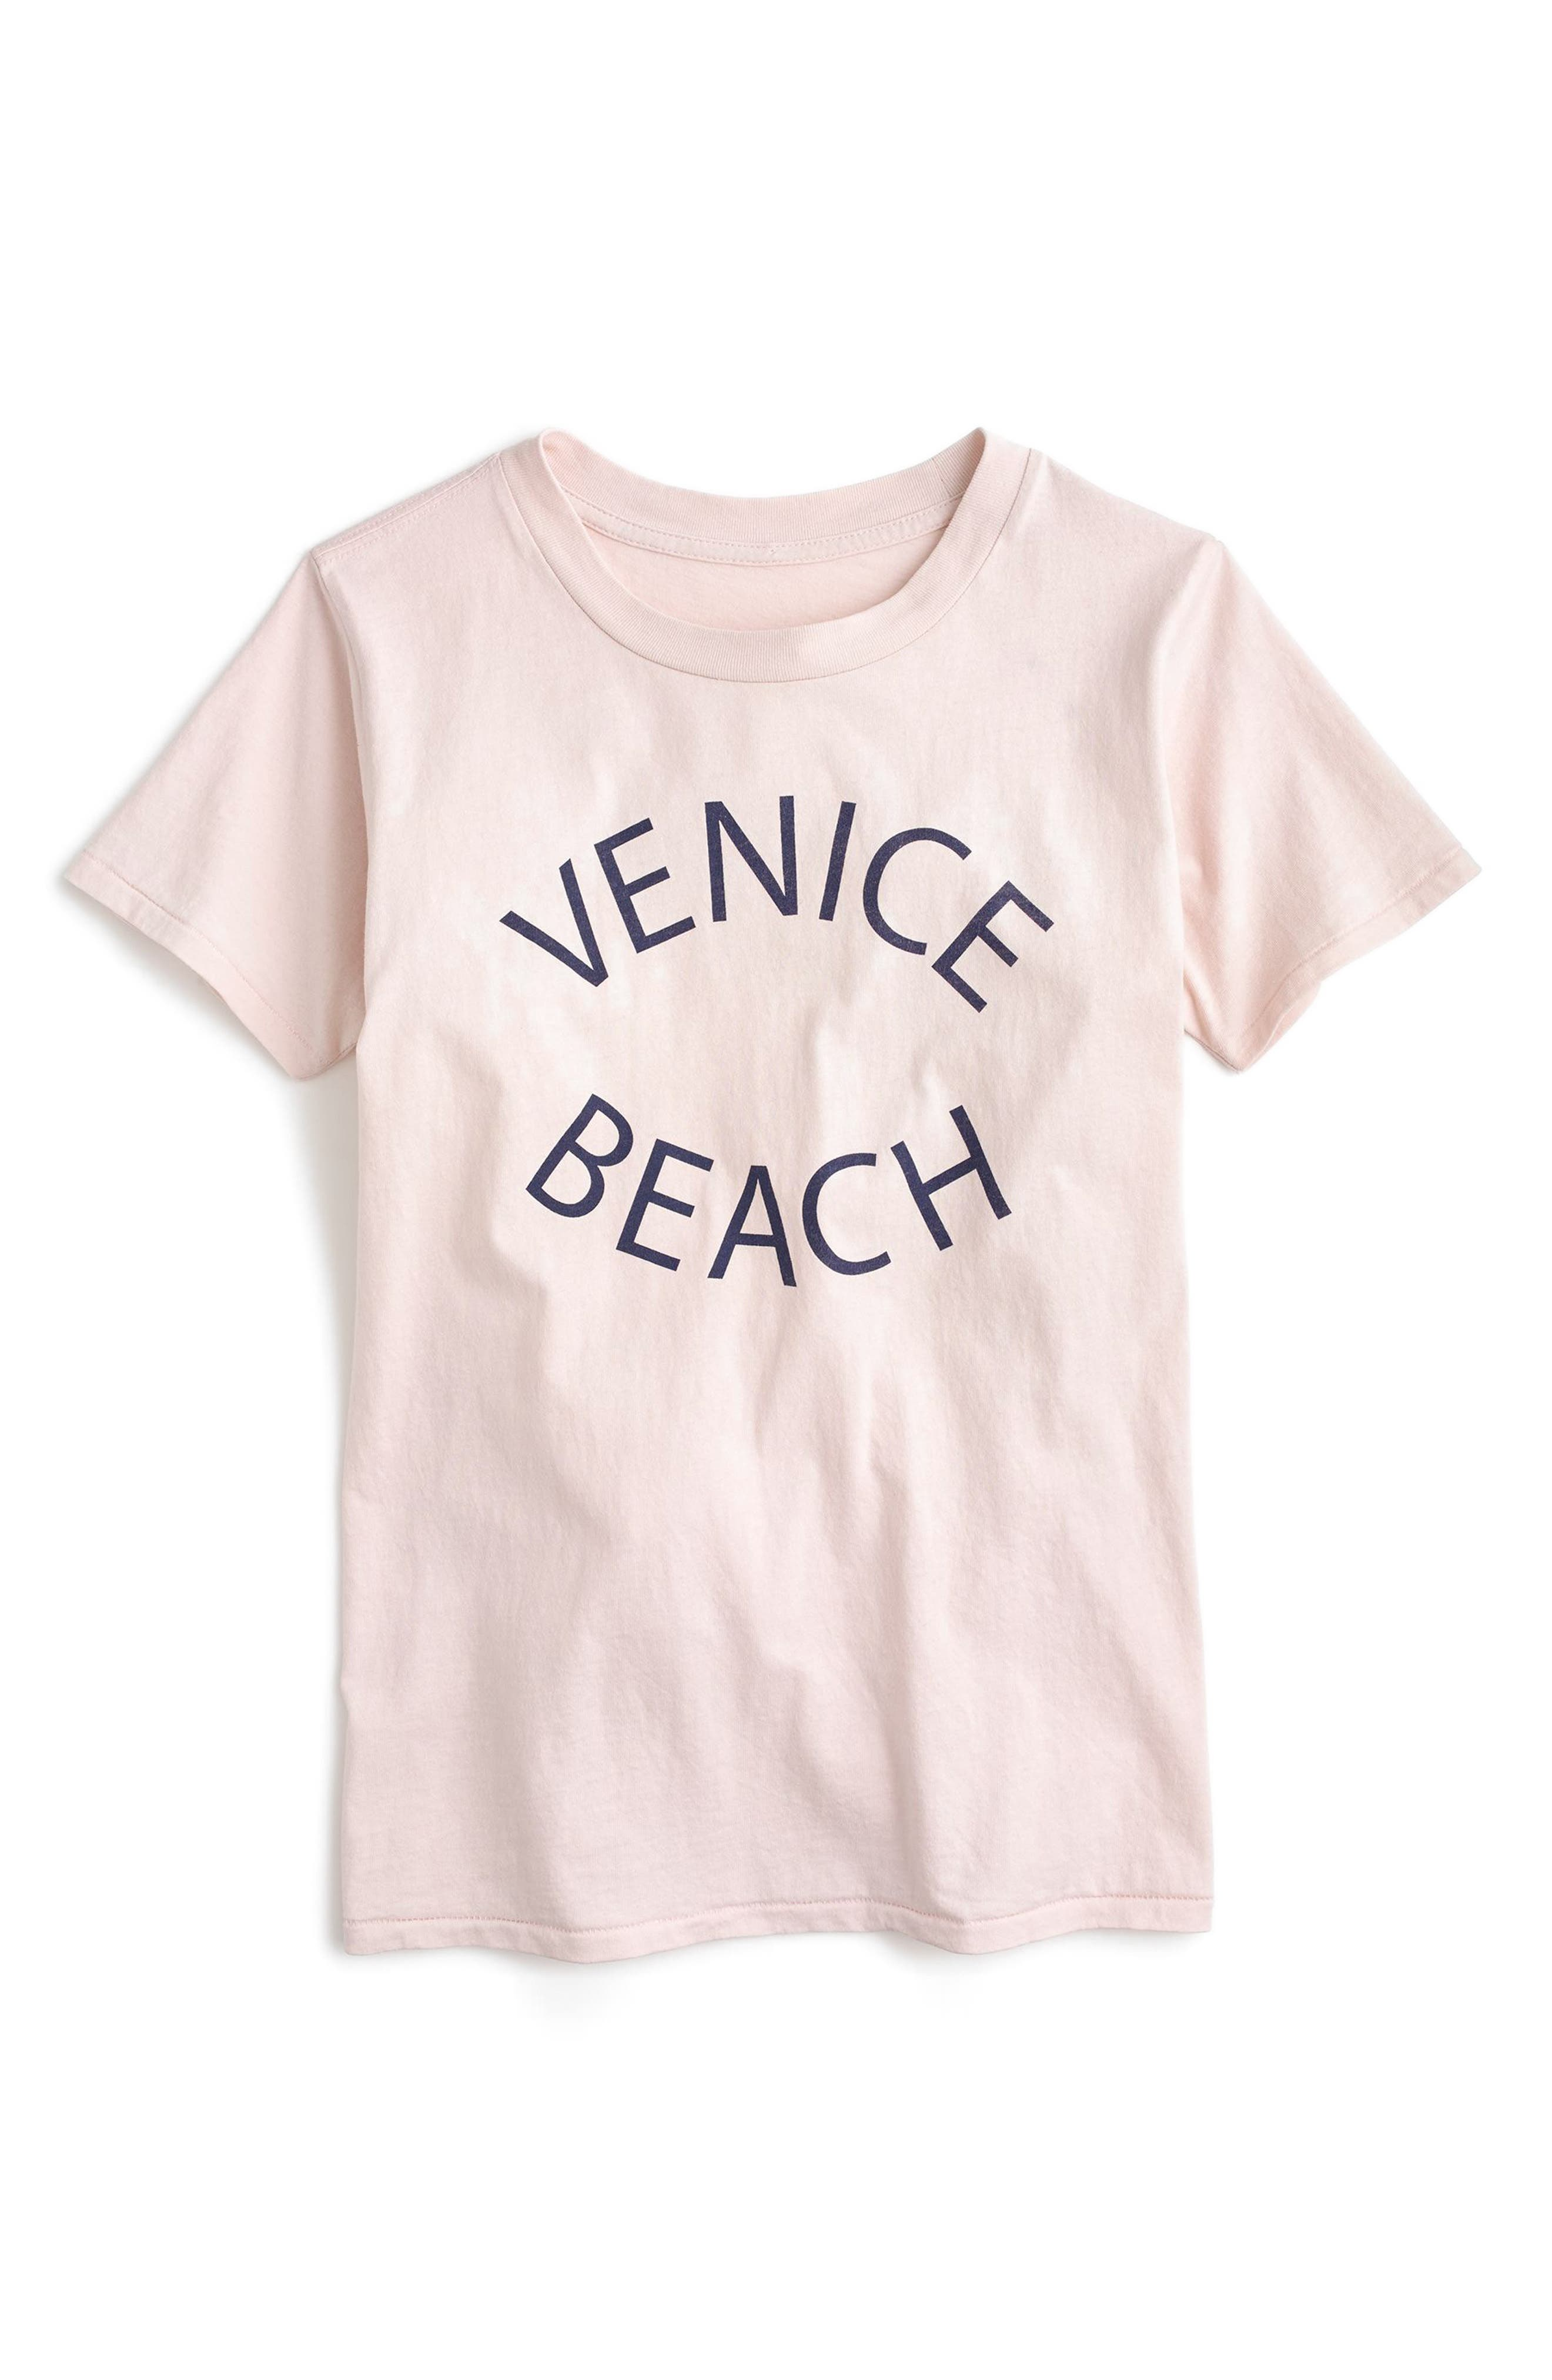 Venice Beach Graphic Tee,                         Main,                         color, Picturesque Pink